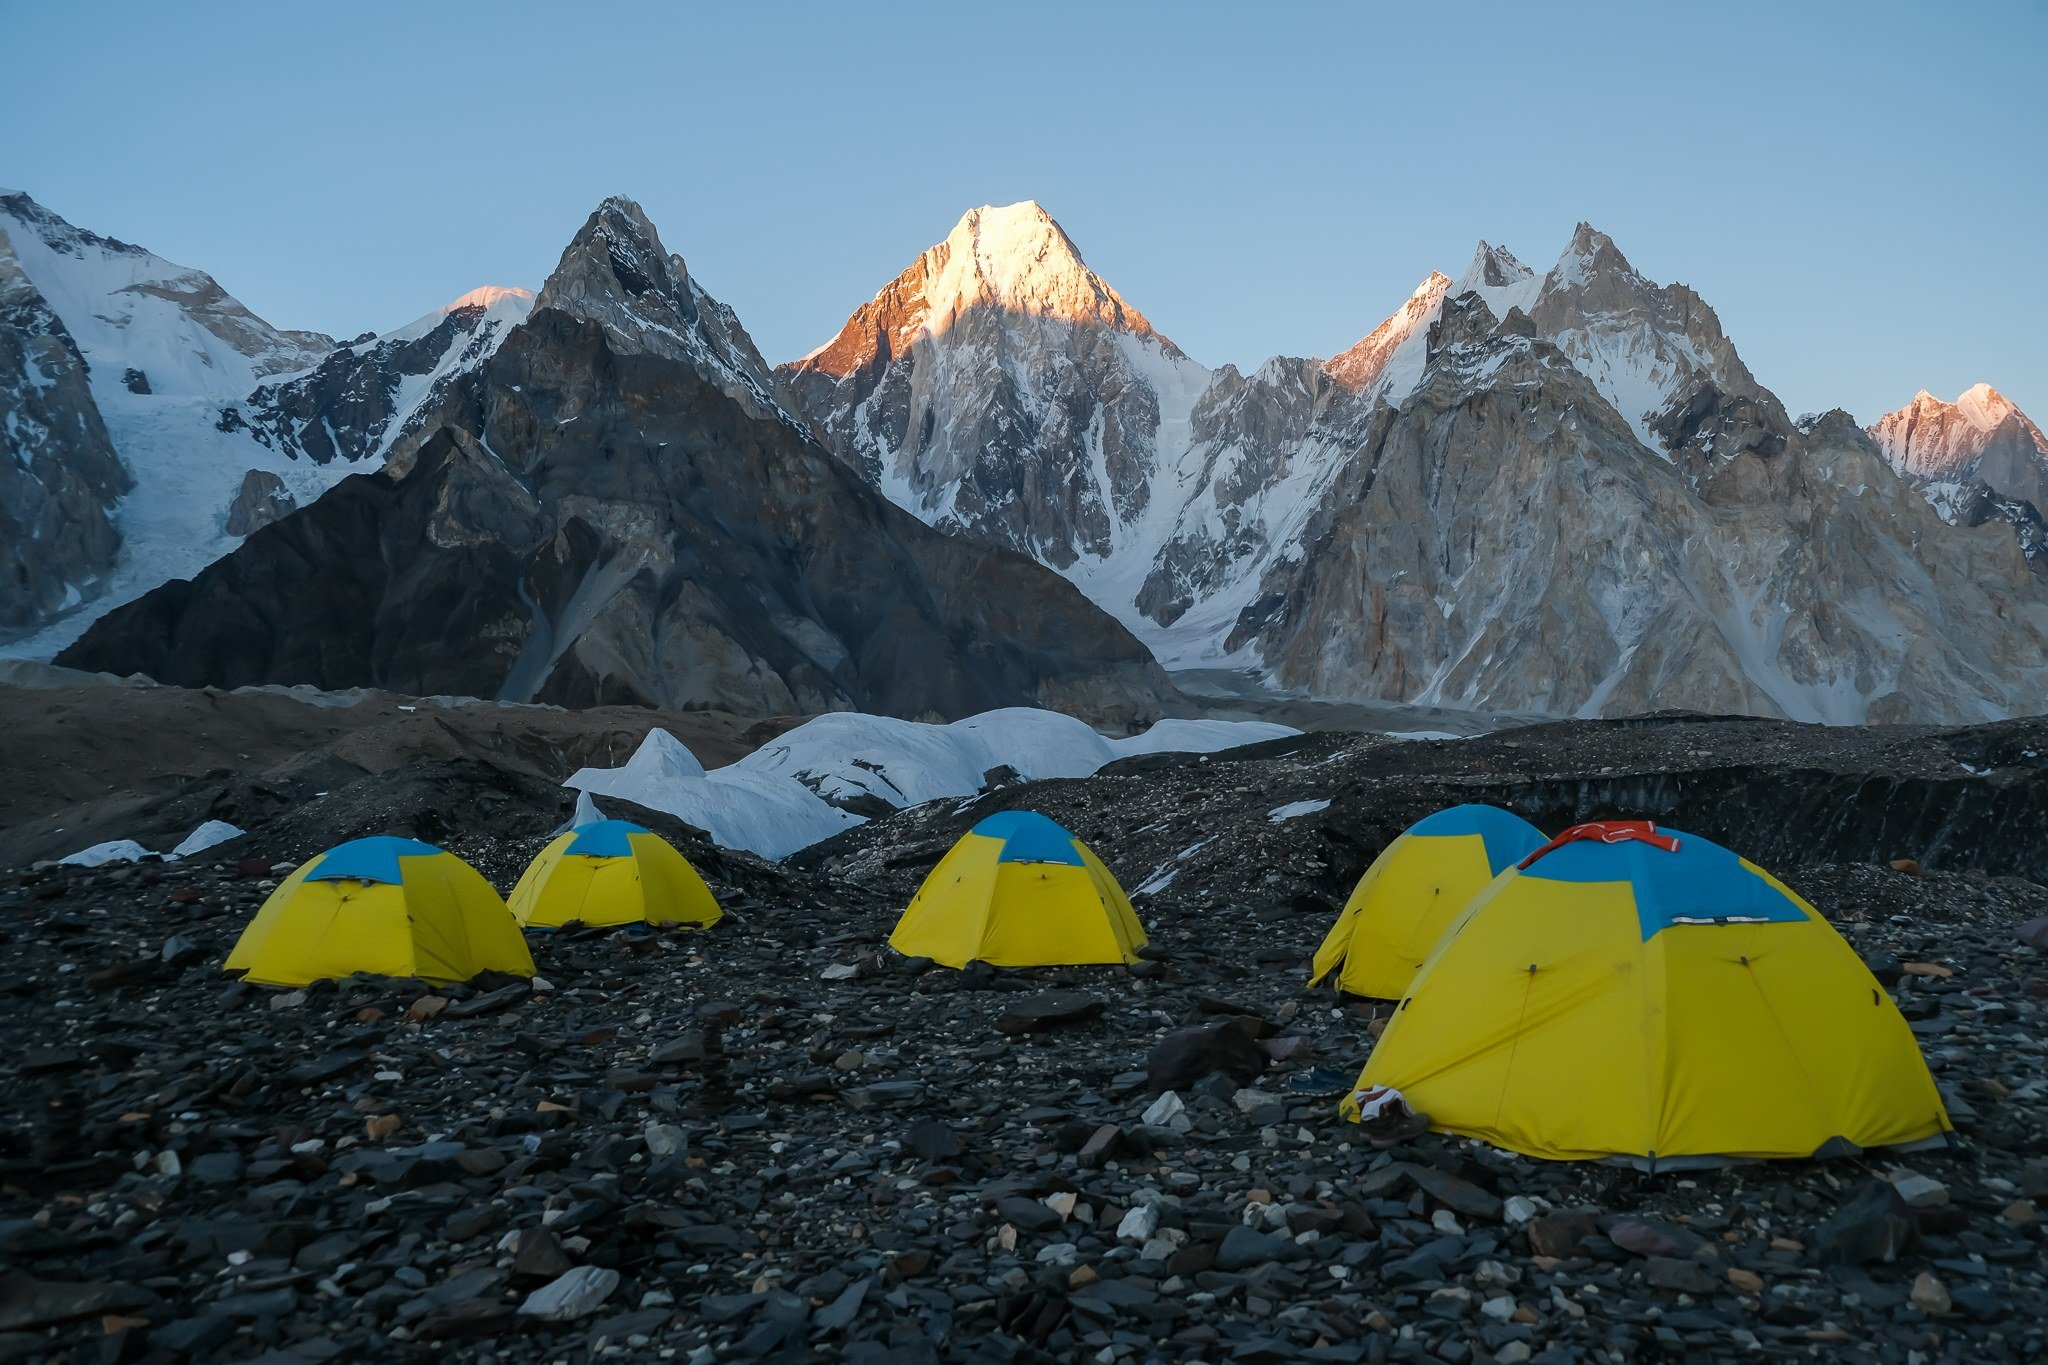 A group of the best hiking tents at K2